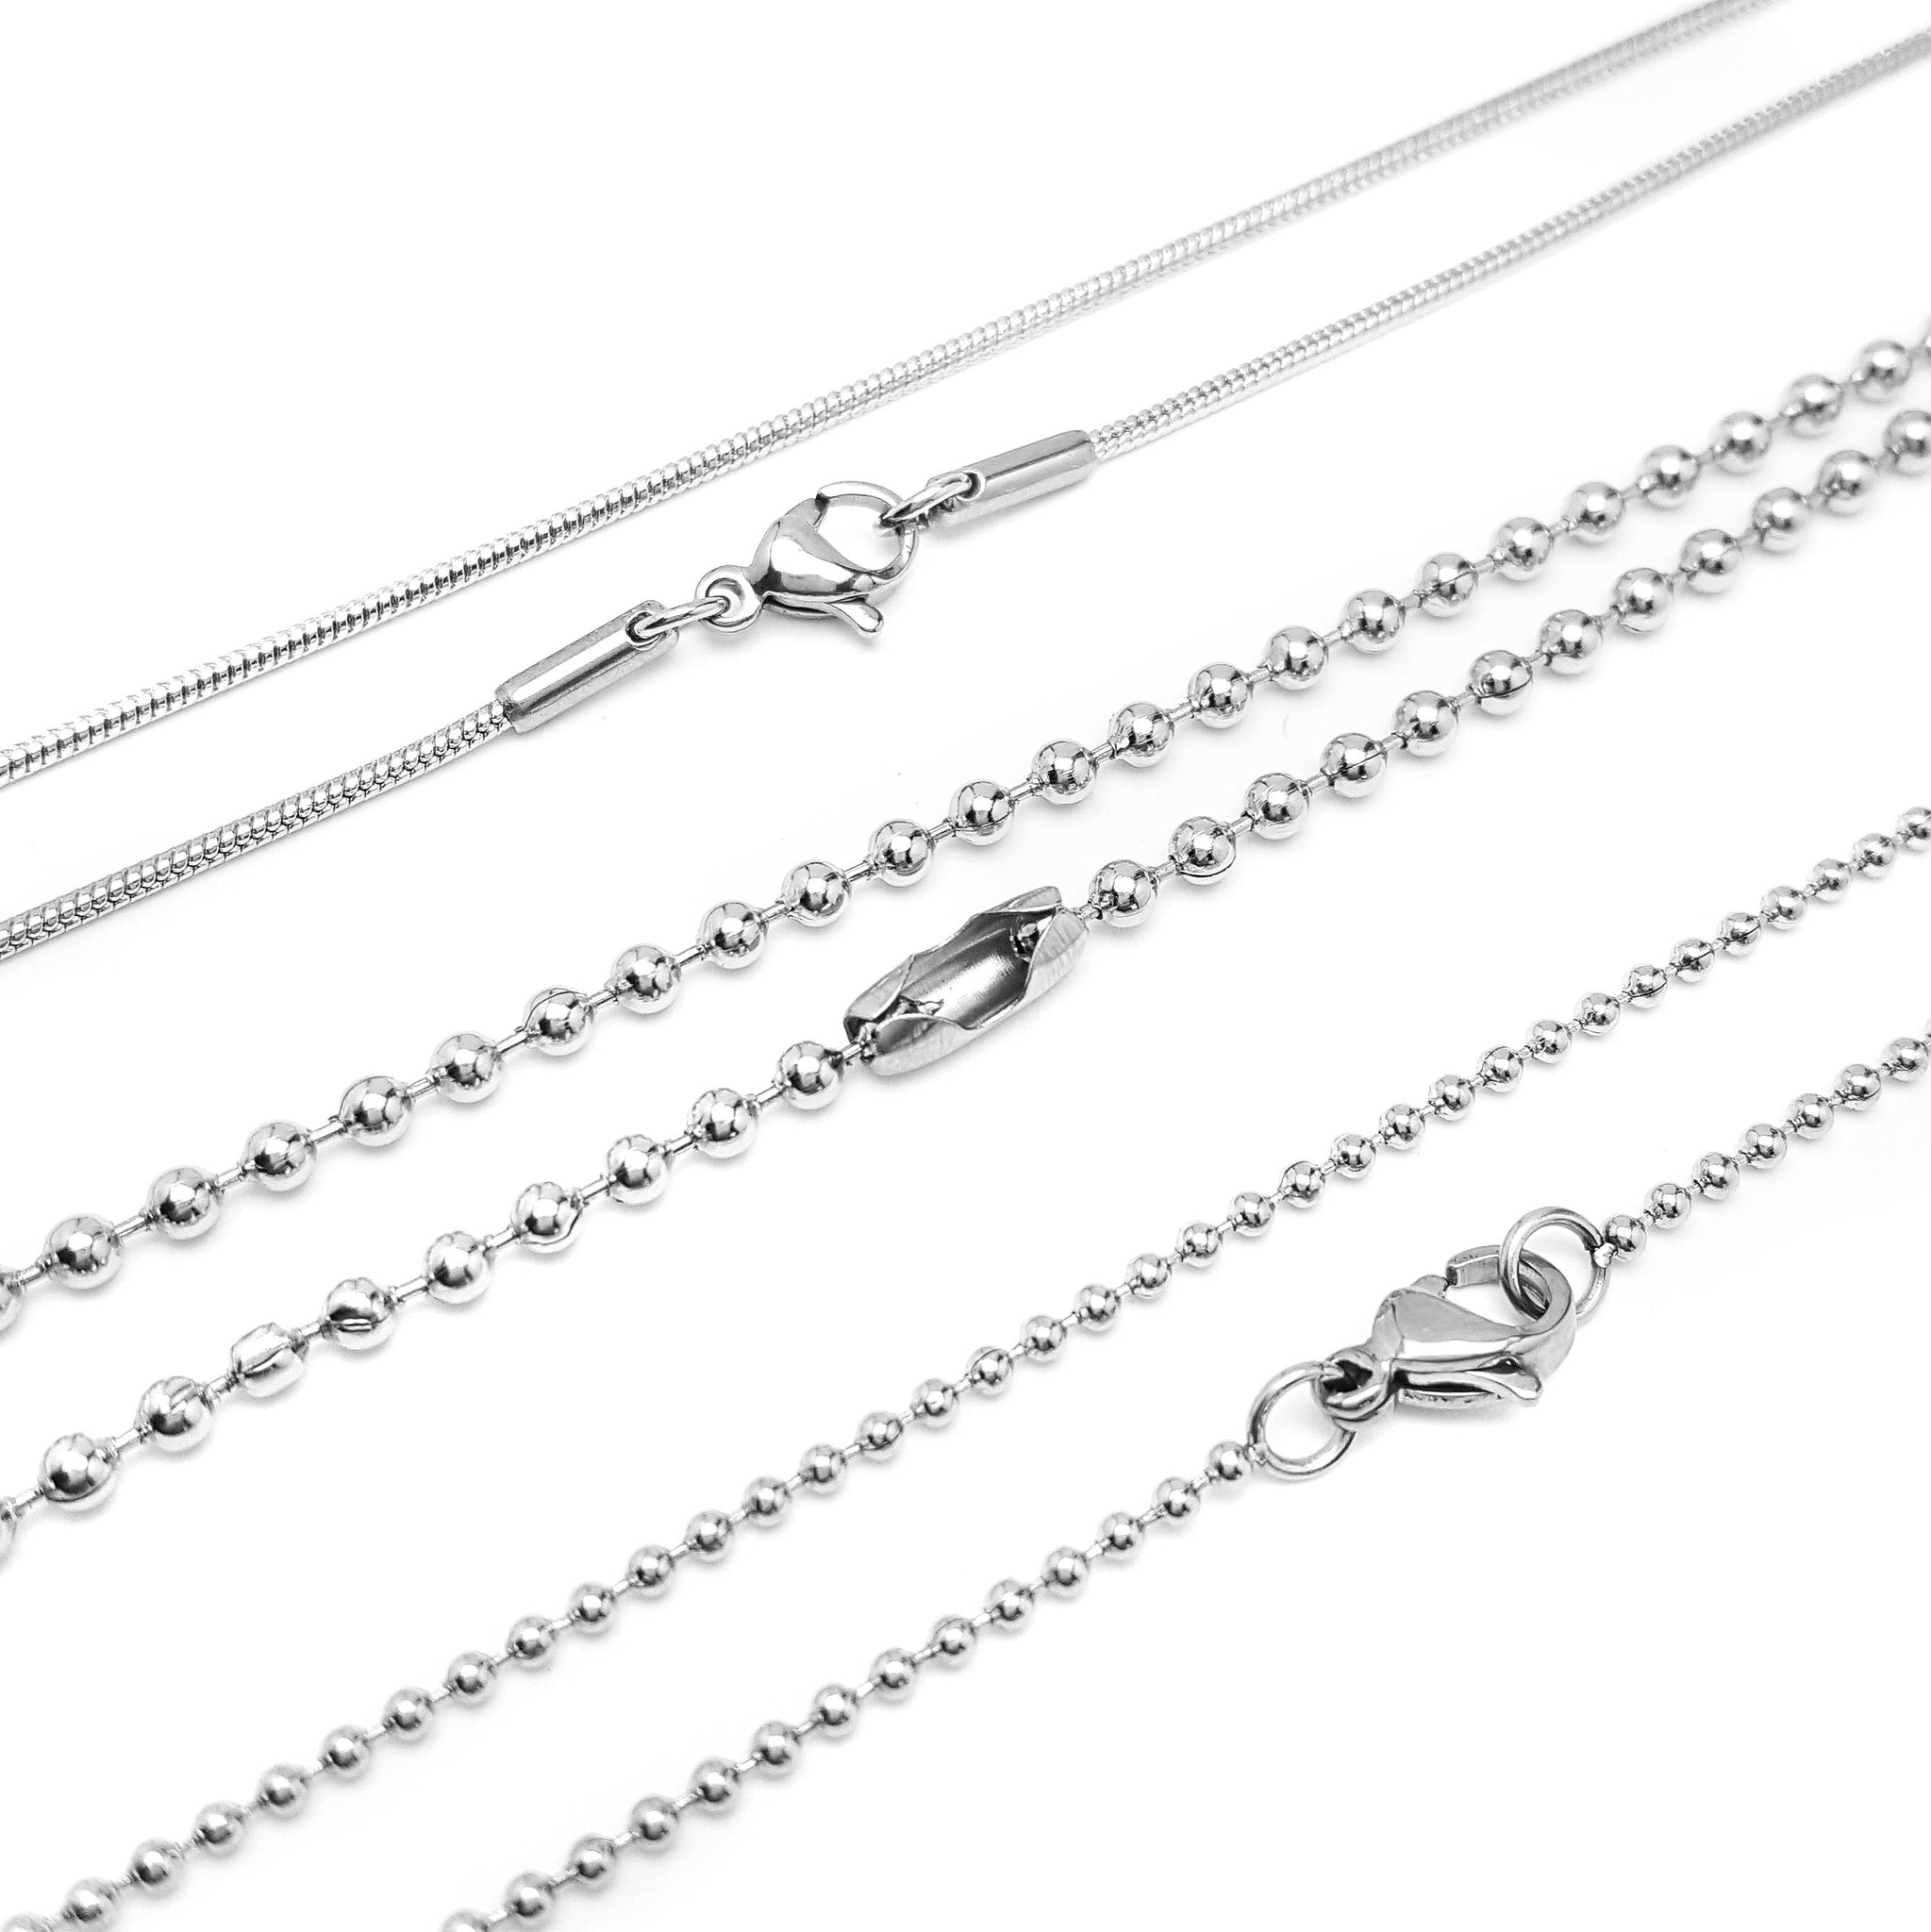 CREATE YOUR OWN Necklace - Blank Stainless Steel Necklace